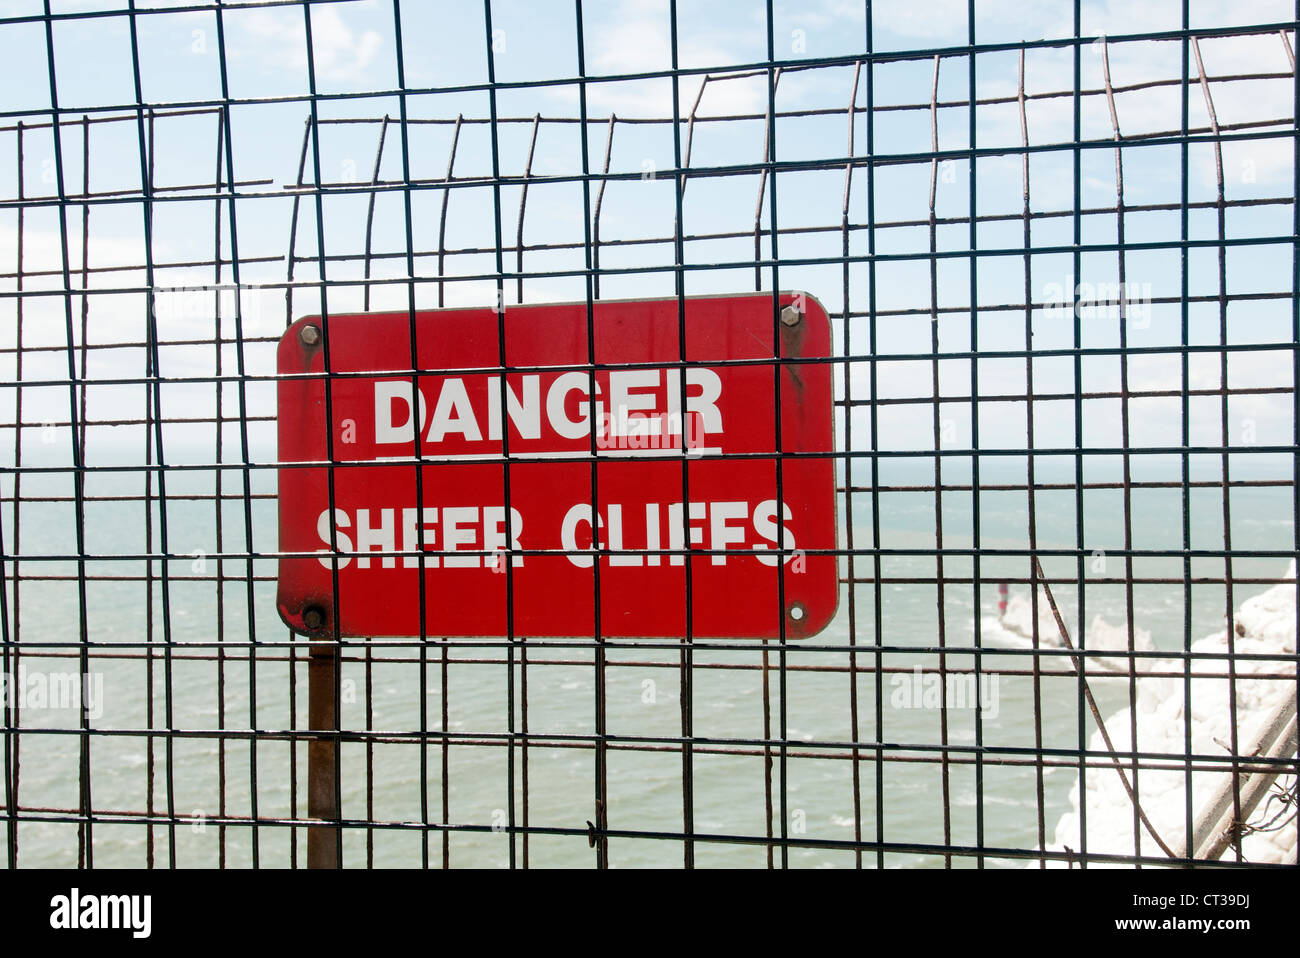 Danger Sheer Cliffs sign at the Needles on the Isle of Wight - Stock Image